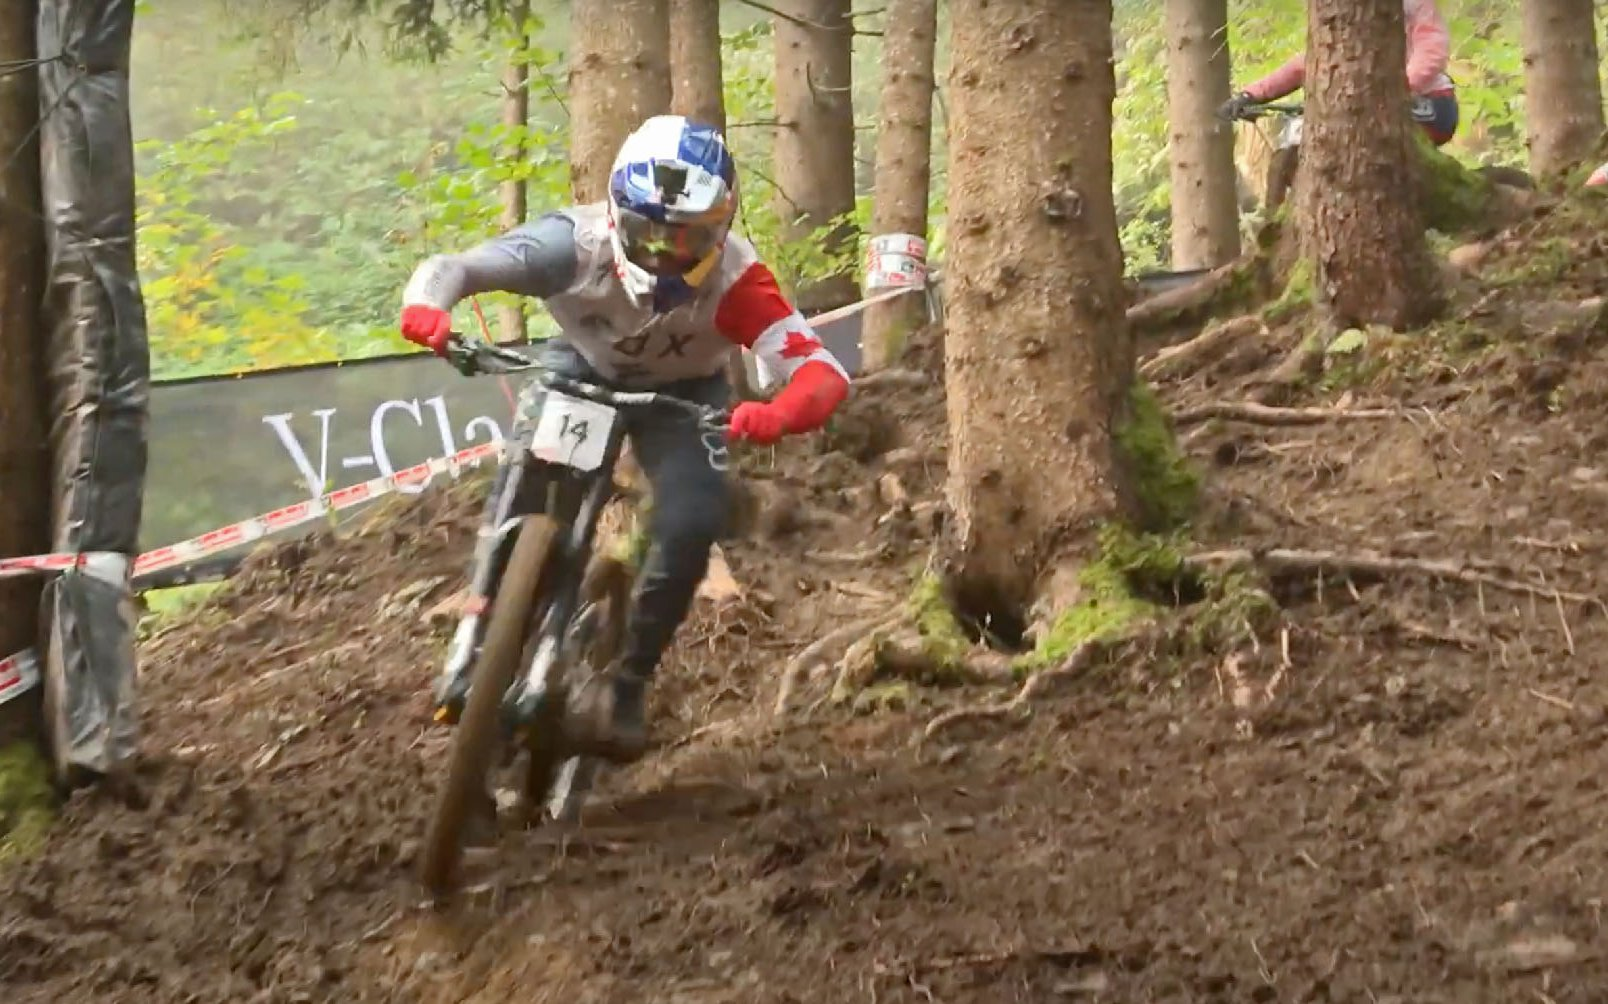 leogang-world-champs-2020.jpg